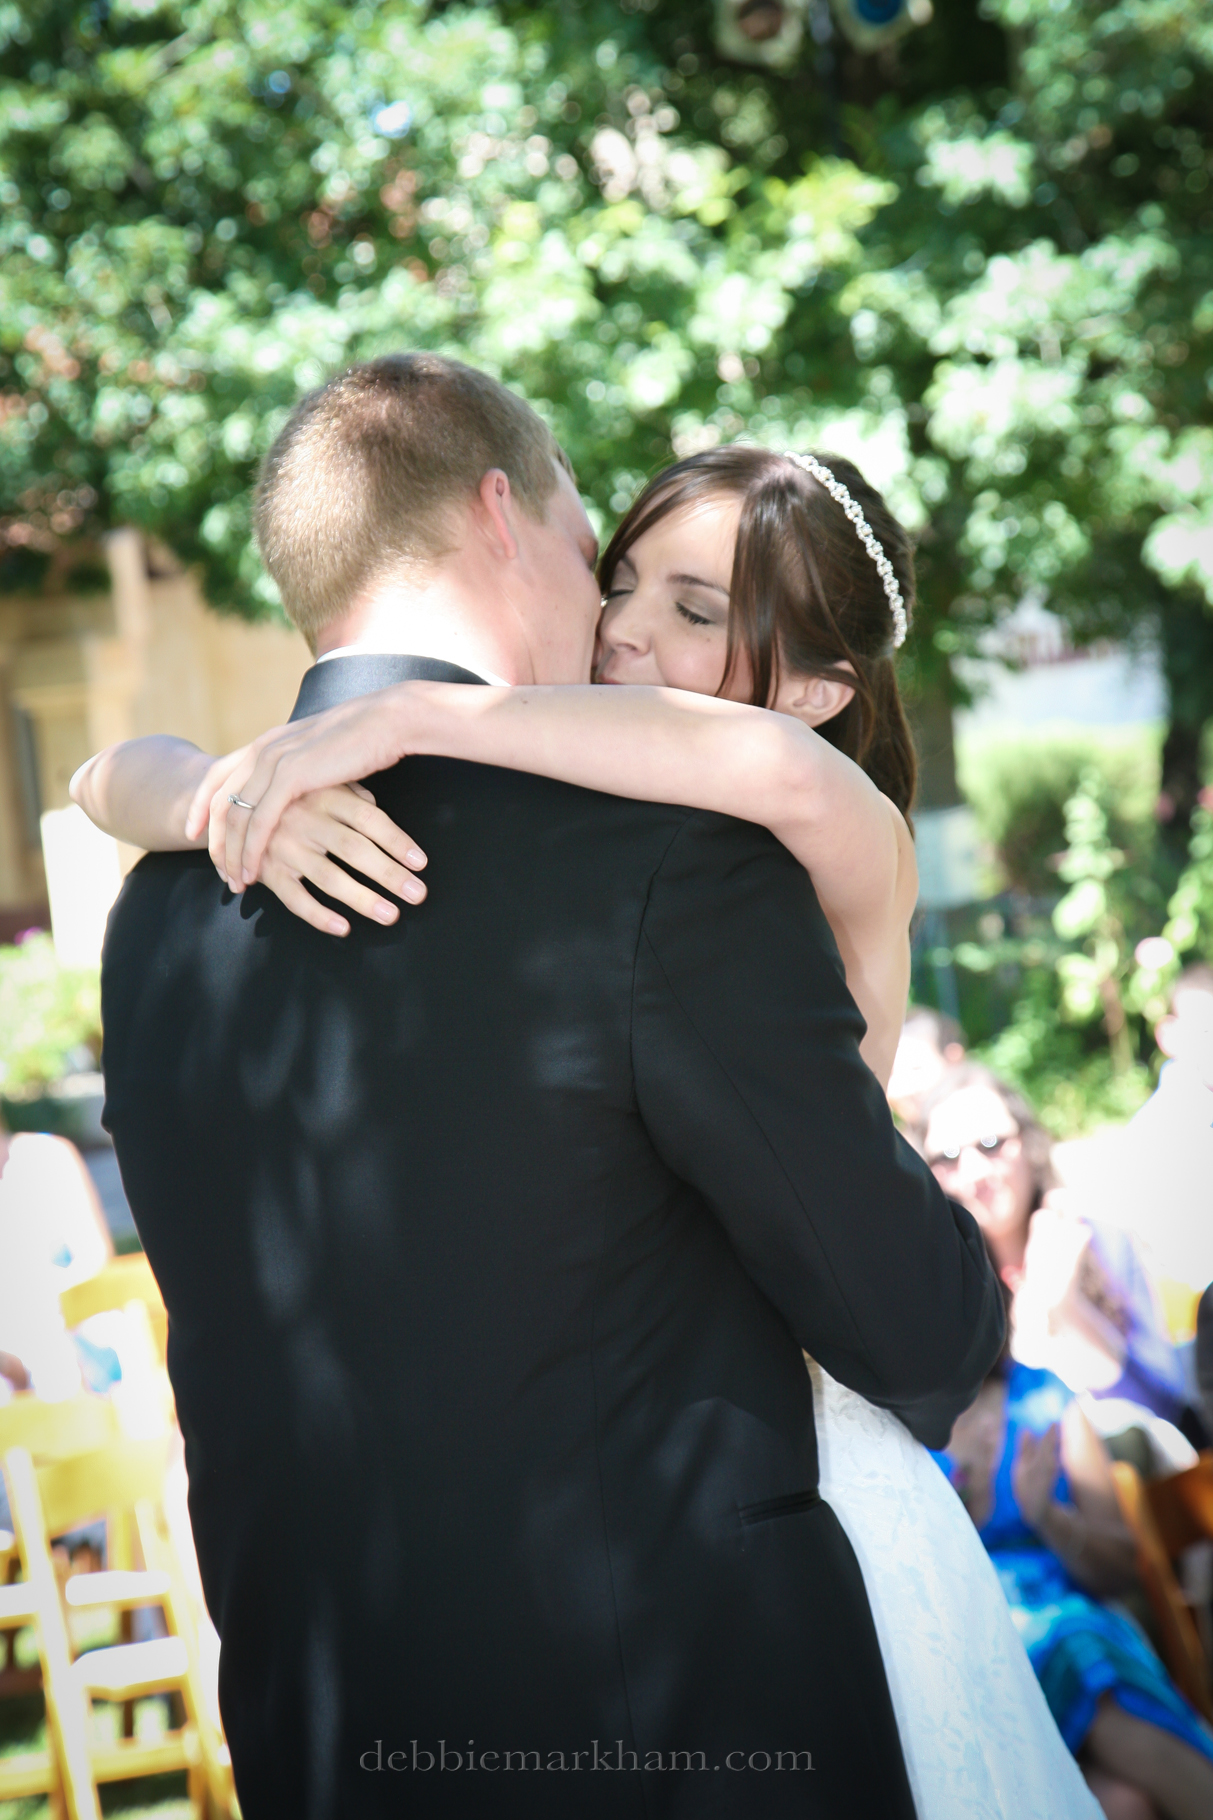 Cambria Photographer Debbie Markham-Professional Wedding Photos at Castoro Winery - Vineyards Outdoor-bride hugging groom